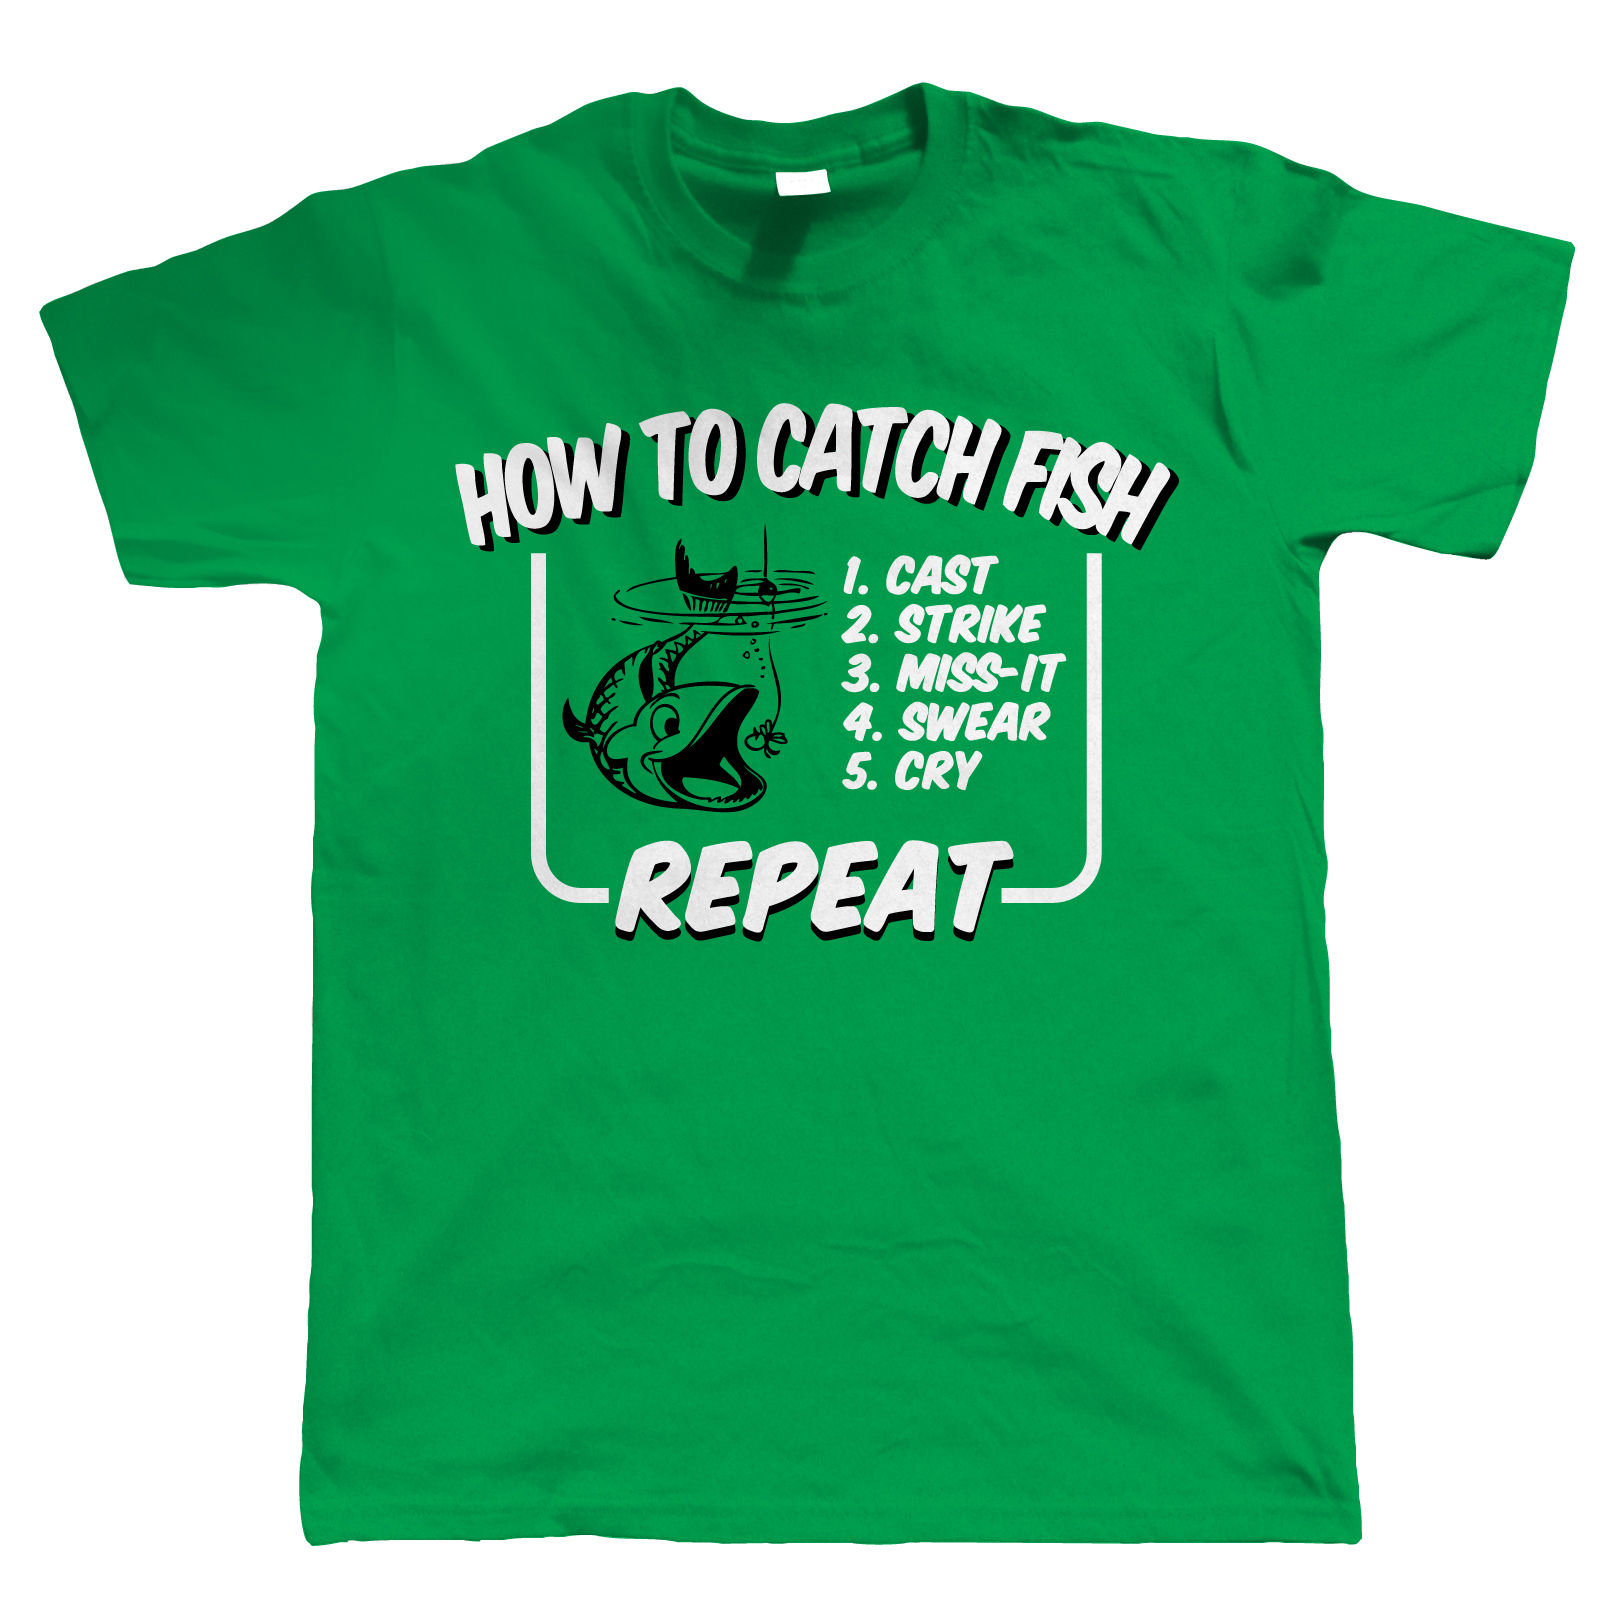 How to catch fish mens funny fishing t shirt gift for for Funny fishing t shirts